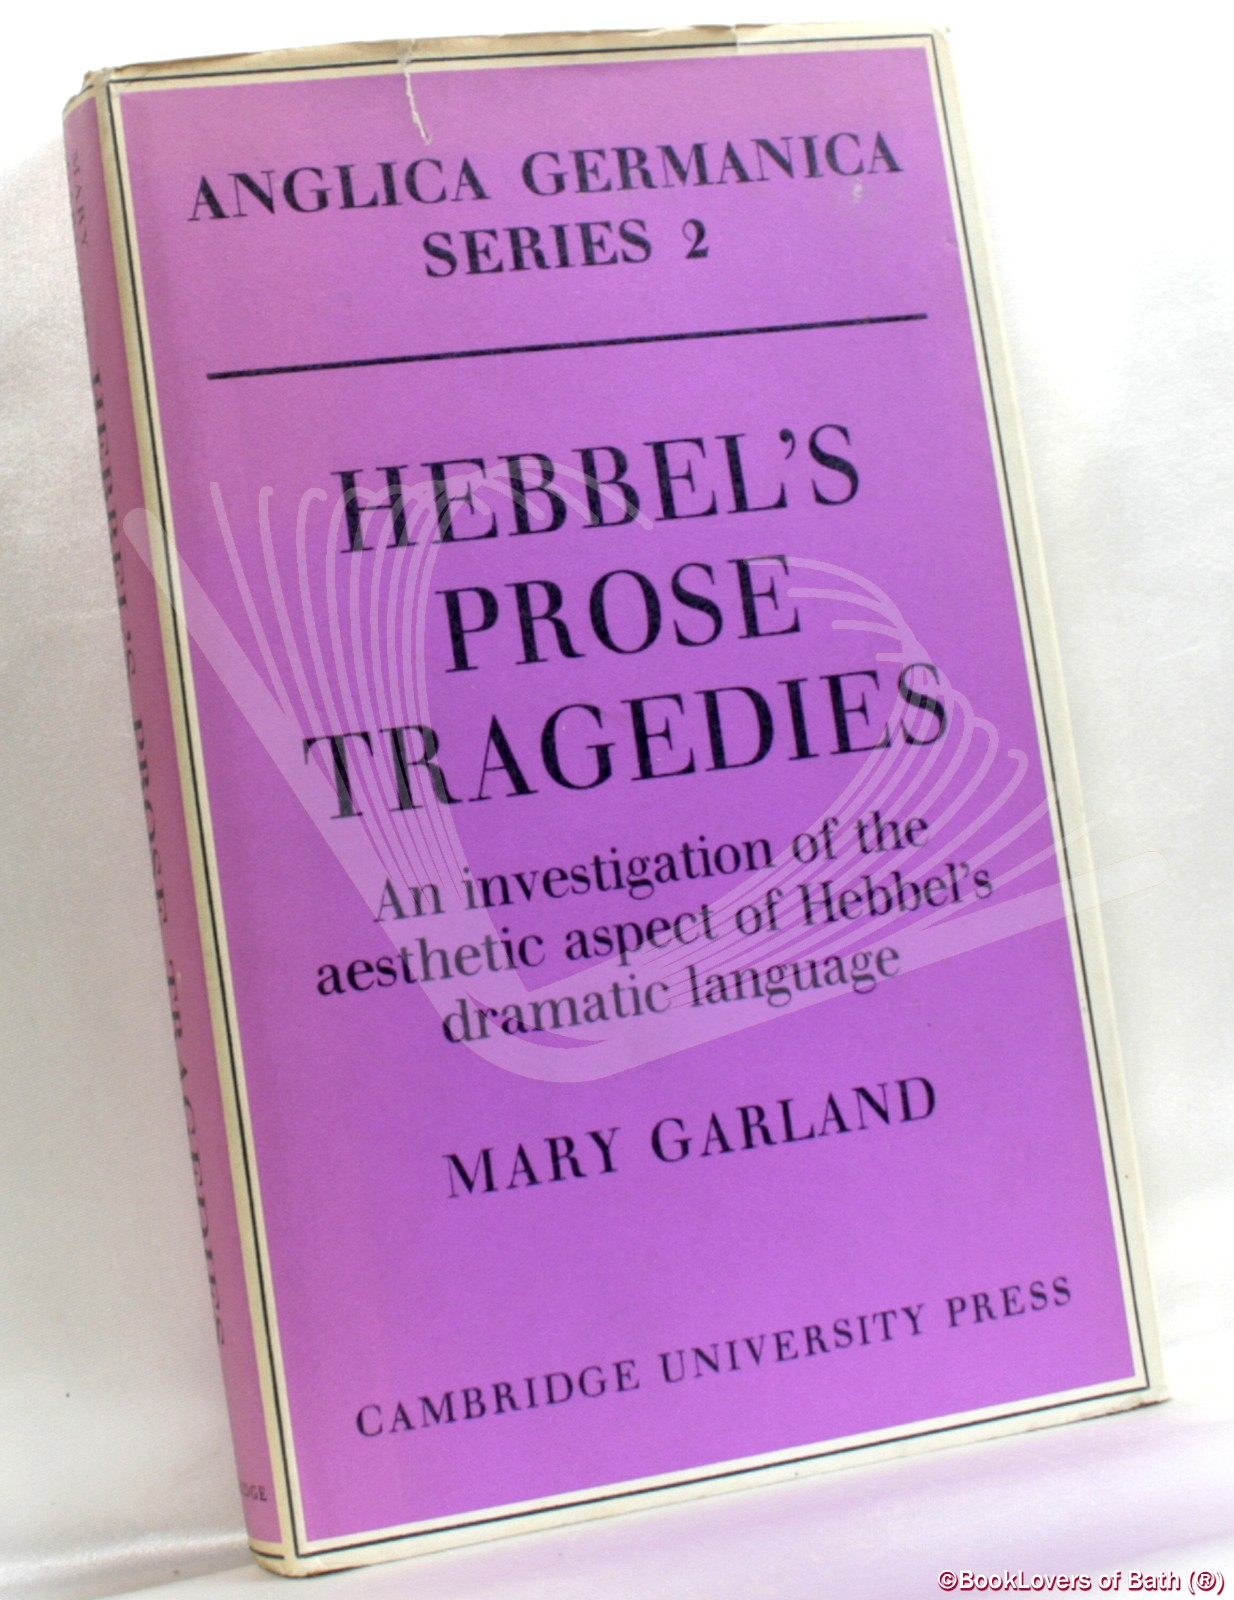 Hebbel's Prose Tragedies: An Investigation of the Aesthetic Aspect of Hebbel's Dramatic Language - Mary Garland